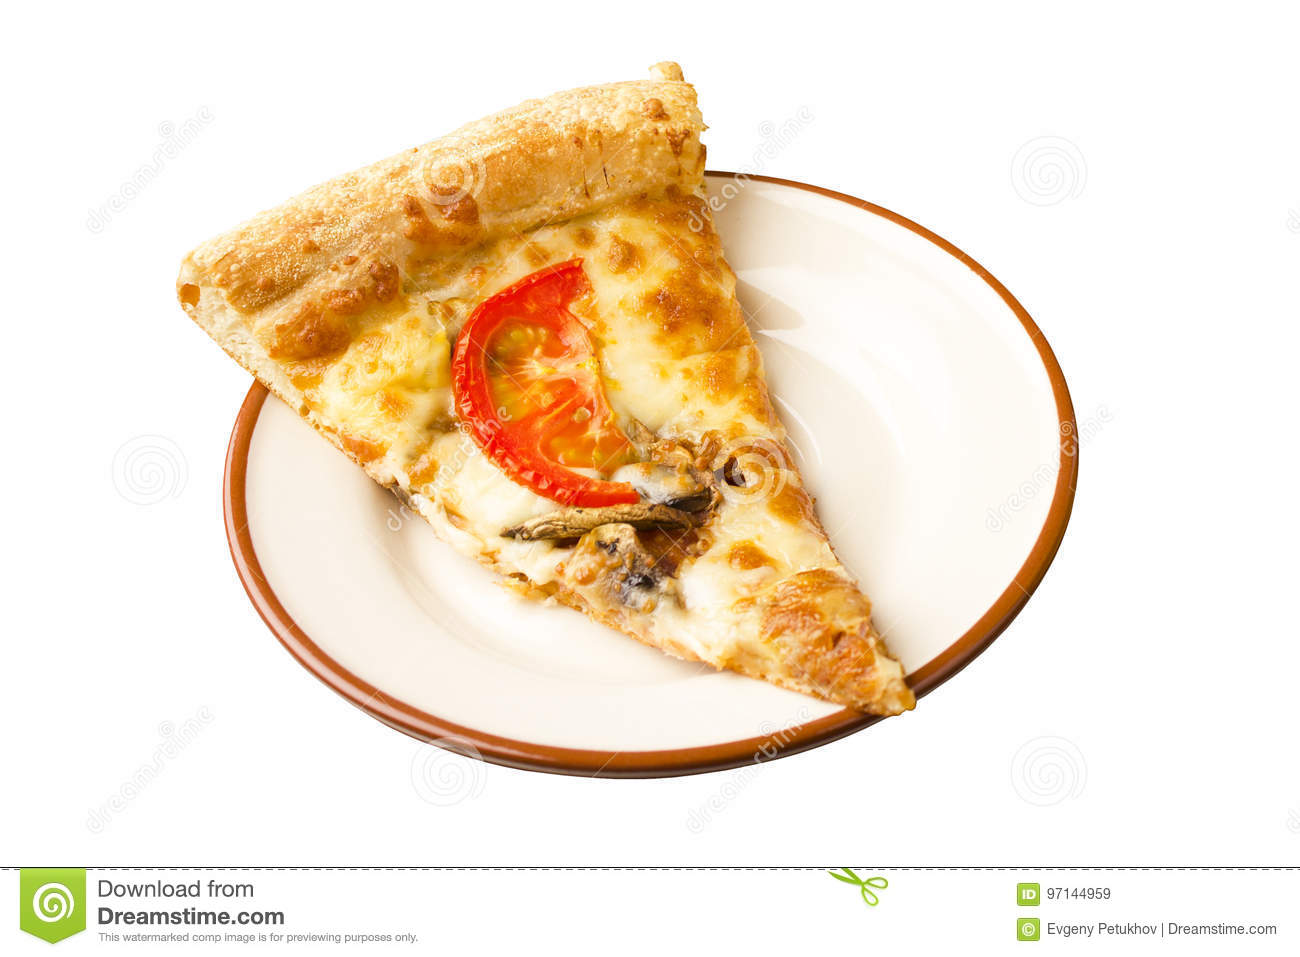 Download A Slice Of Cheese Pizza On Plate Stock Image